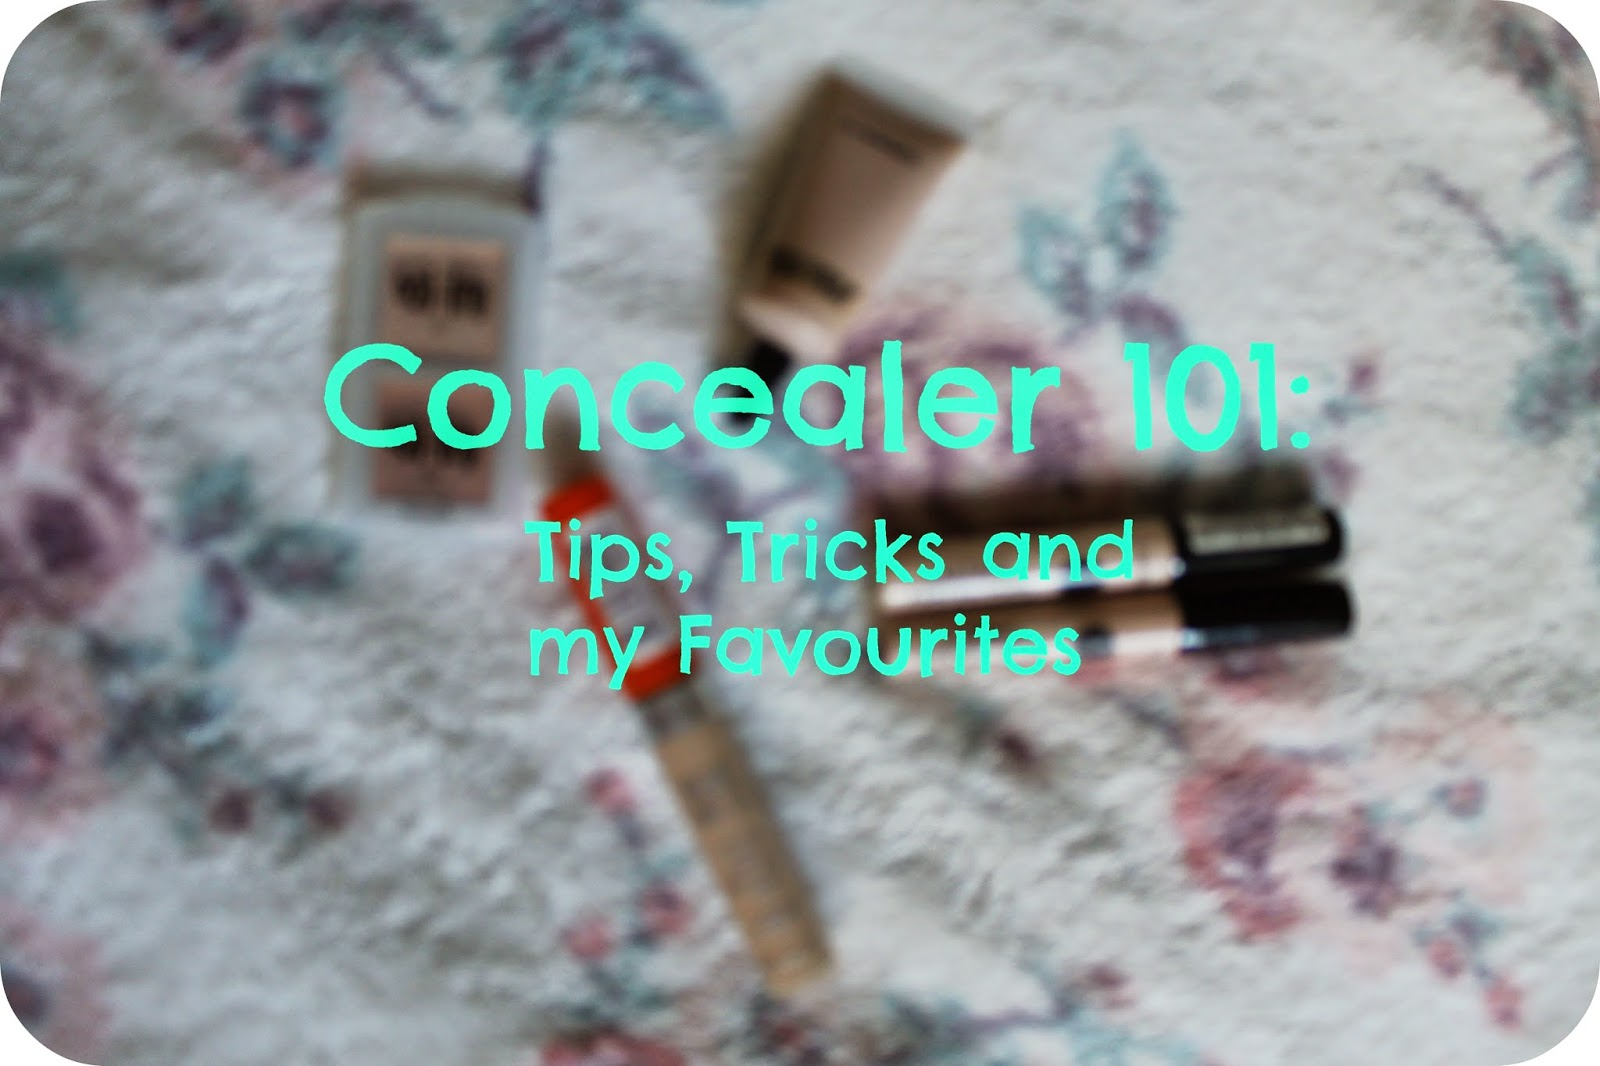 Concealer 101 with Rimmel, Collection, MAC and Benefit